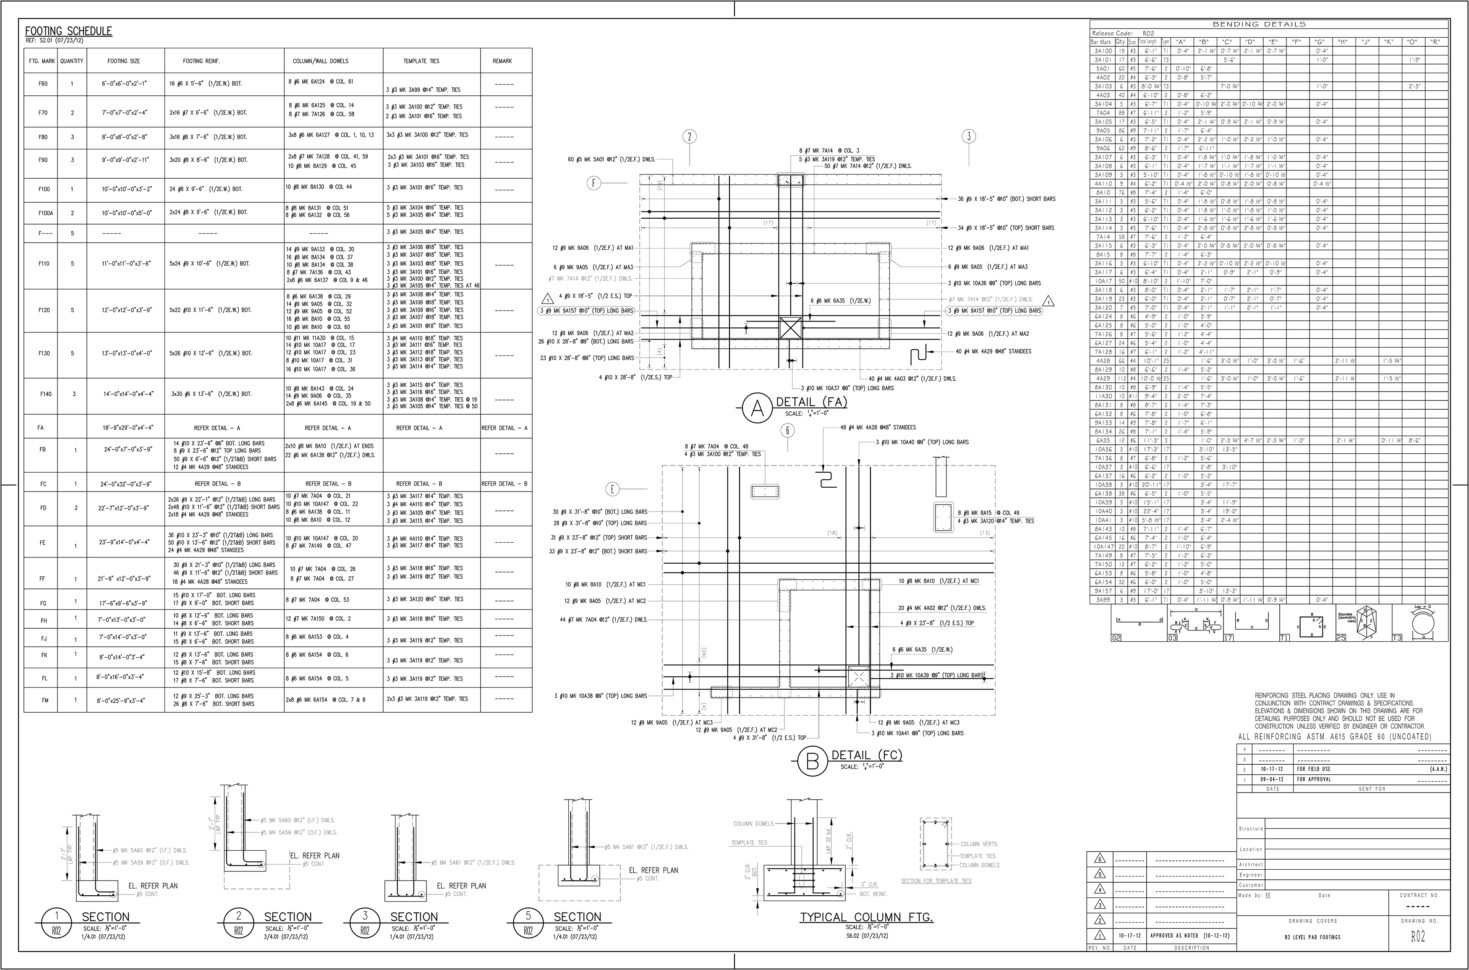 Excel Spreadsheet Construction Project | Wiring Diagram Database